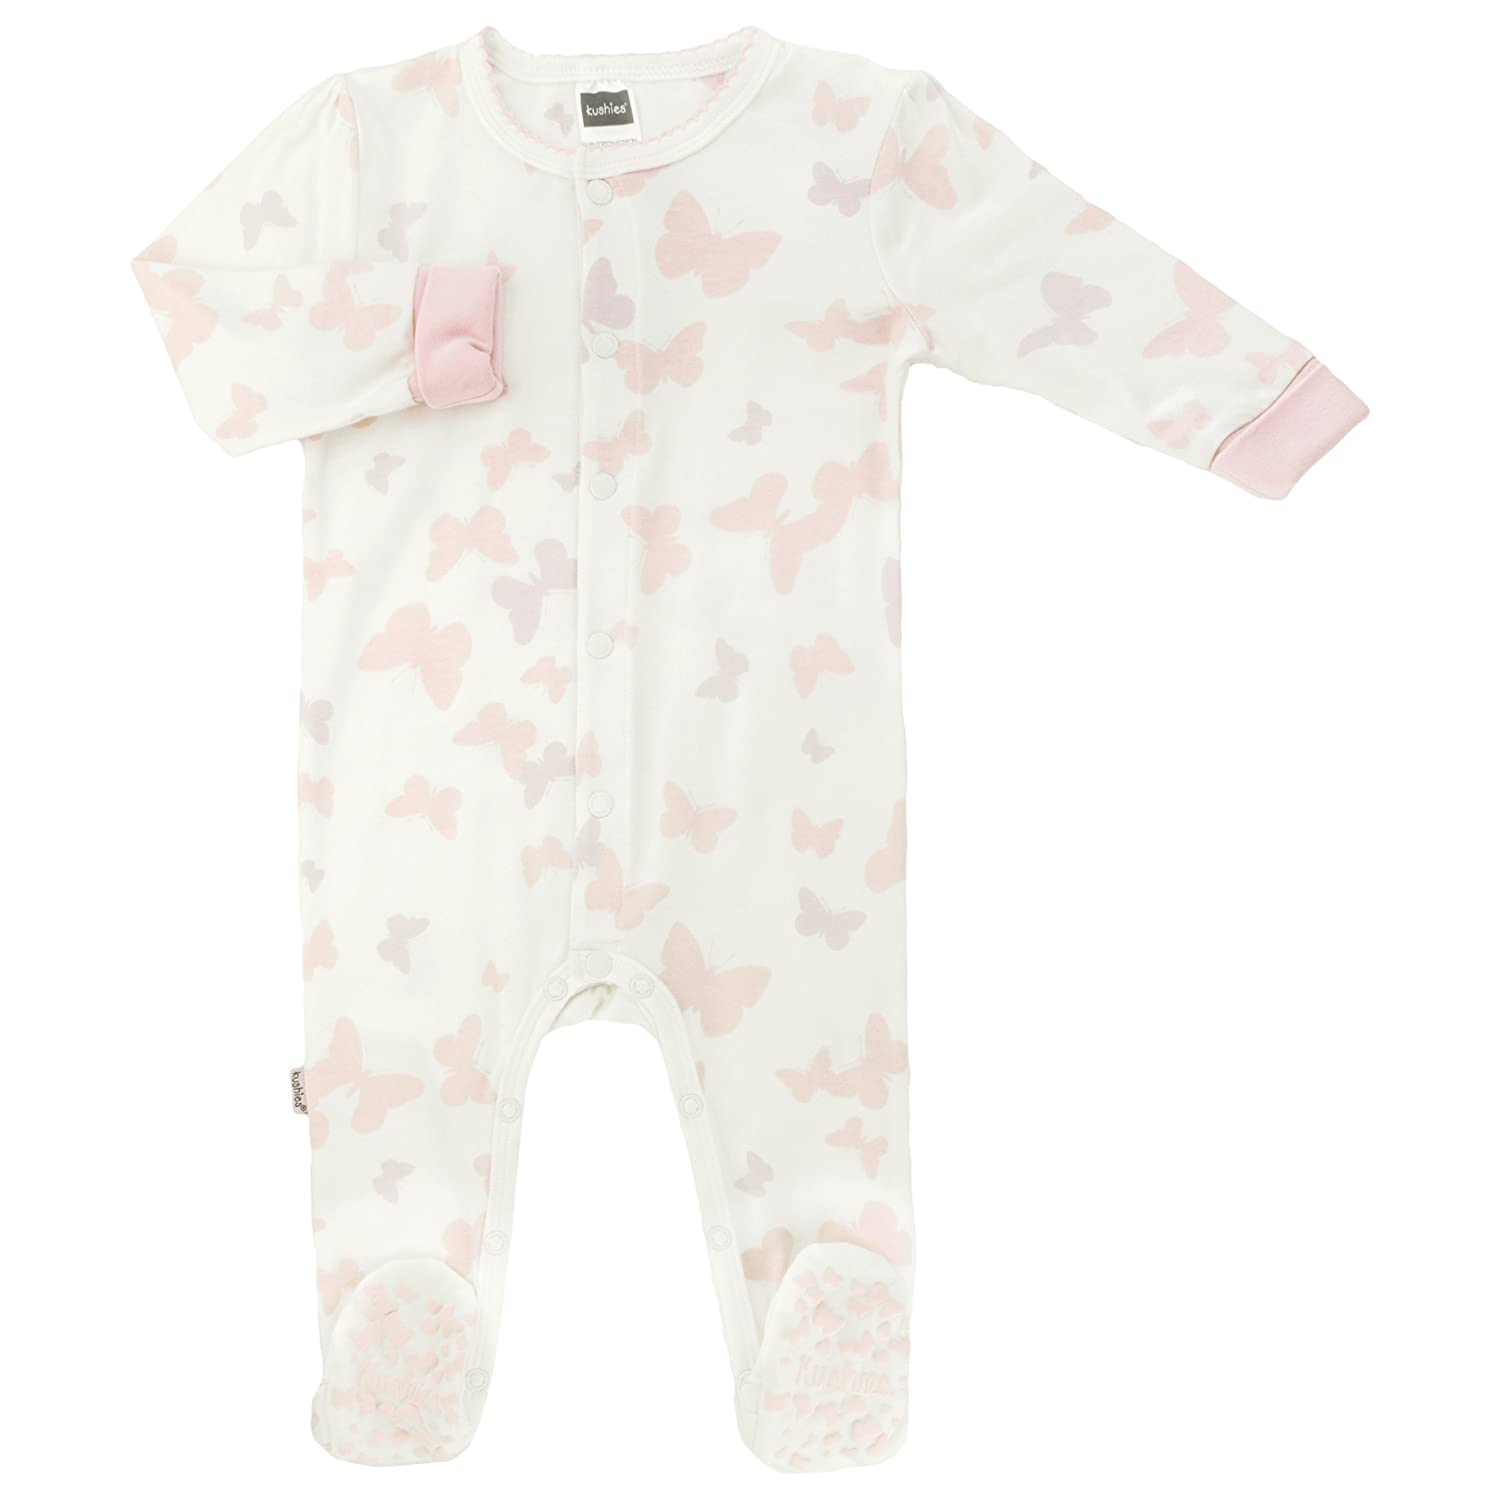 Kushies Baby Girls Snap Front Sleeper, Light Pink Print, Preemie L16160006